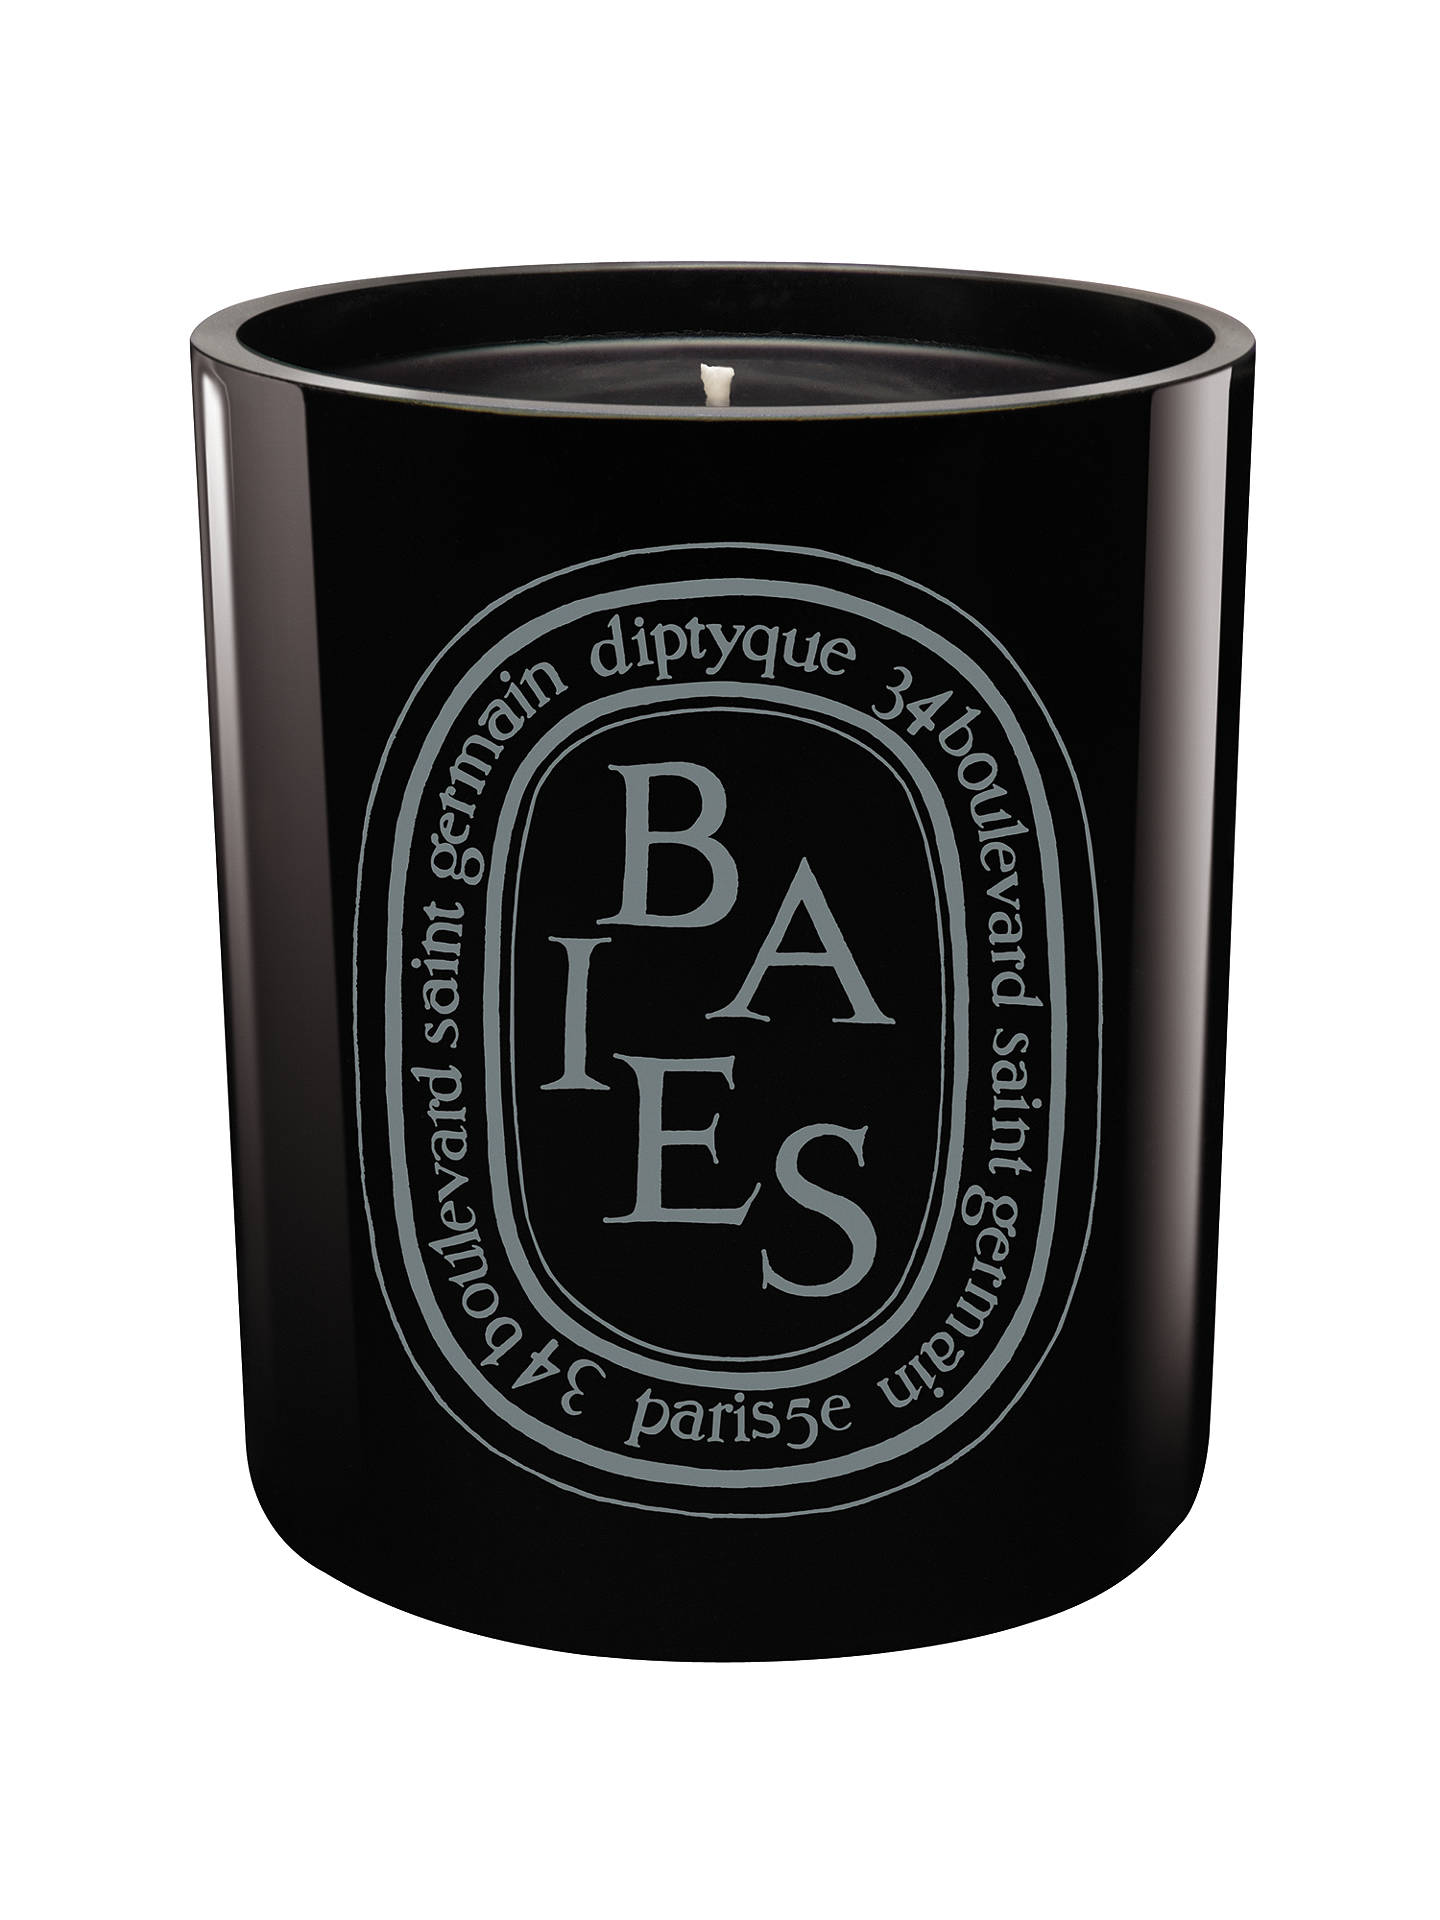 Buy Diptyque Baies Noire Scented Candle, 300g Online at johnlewis.com